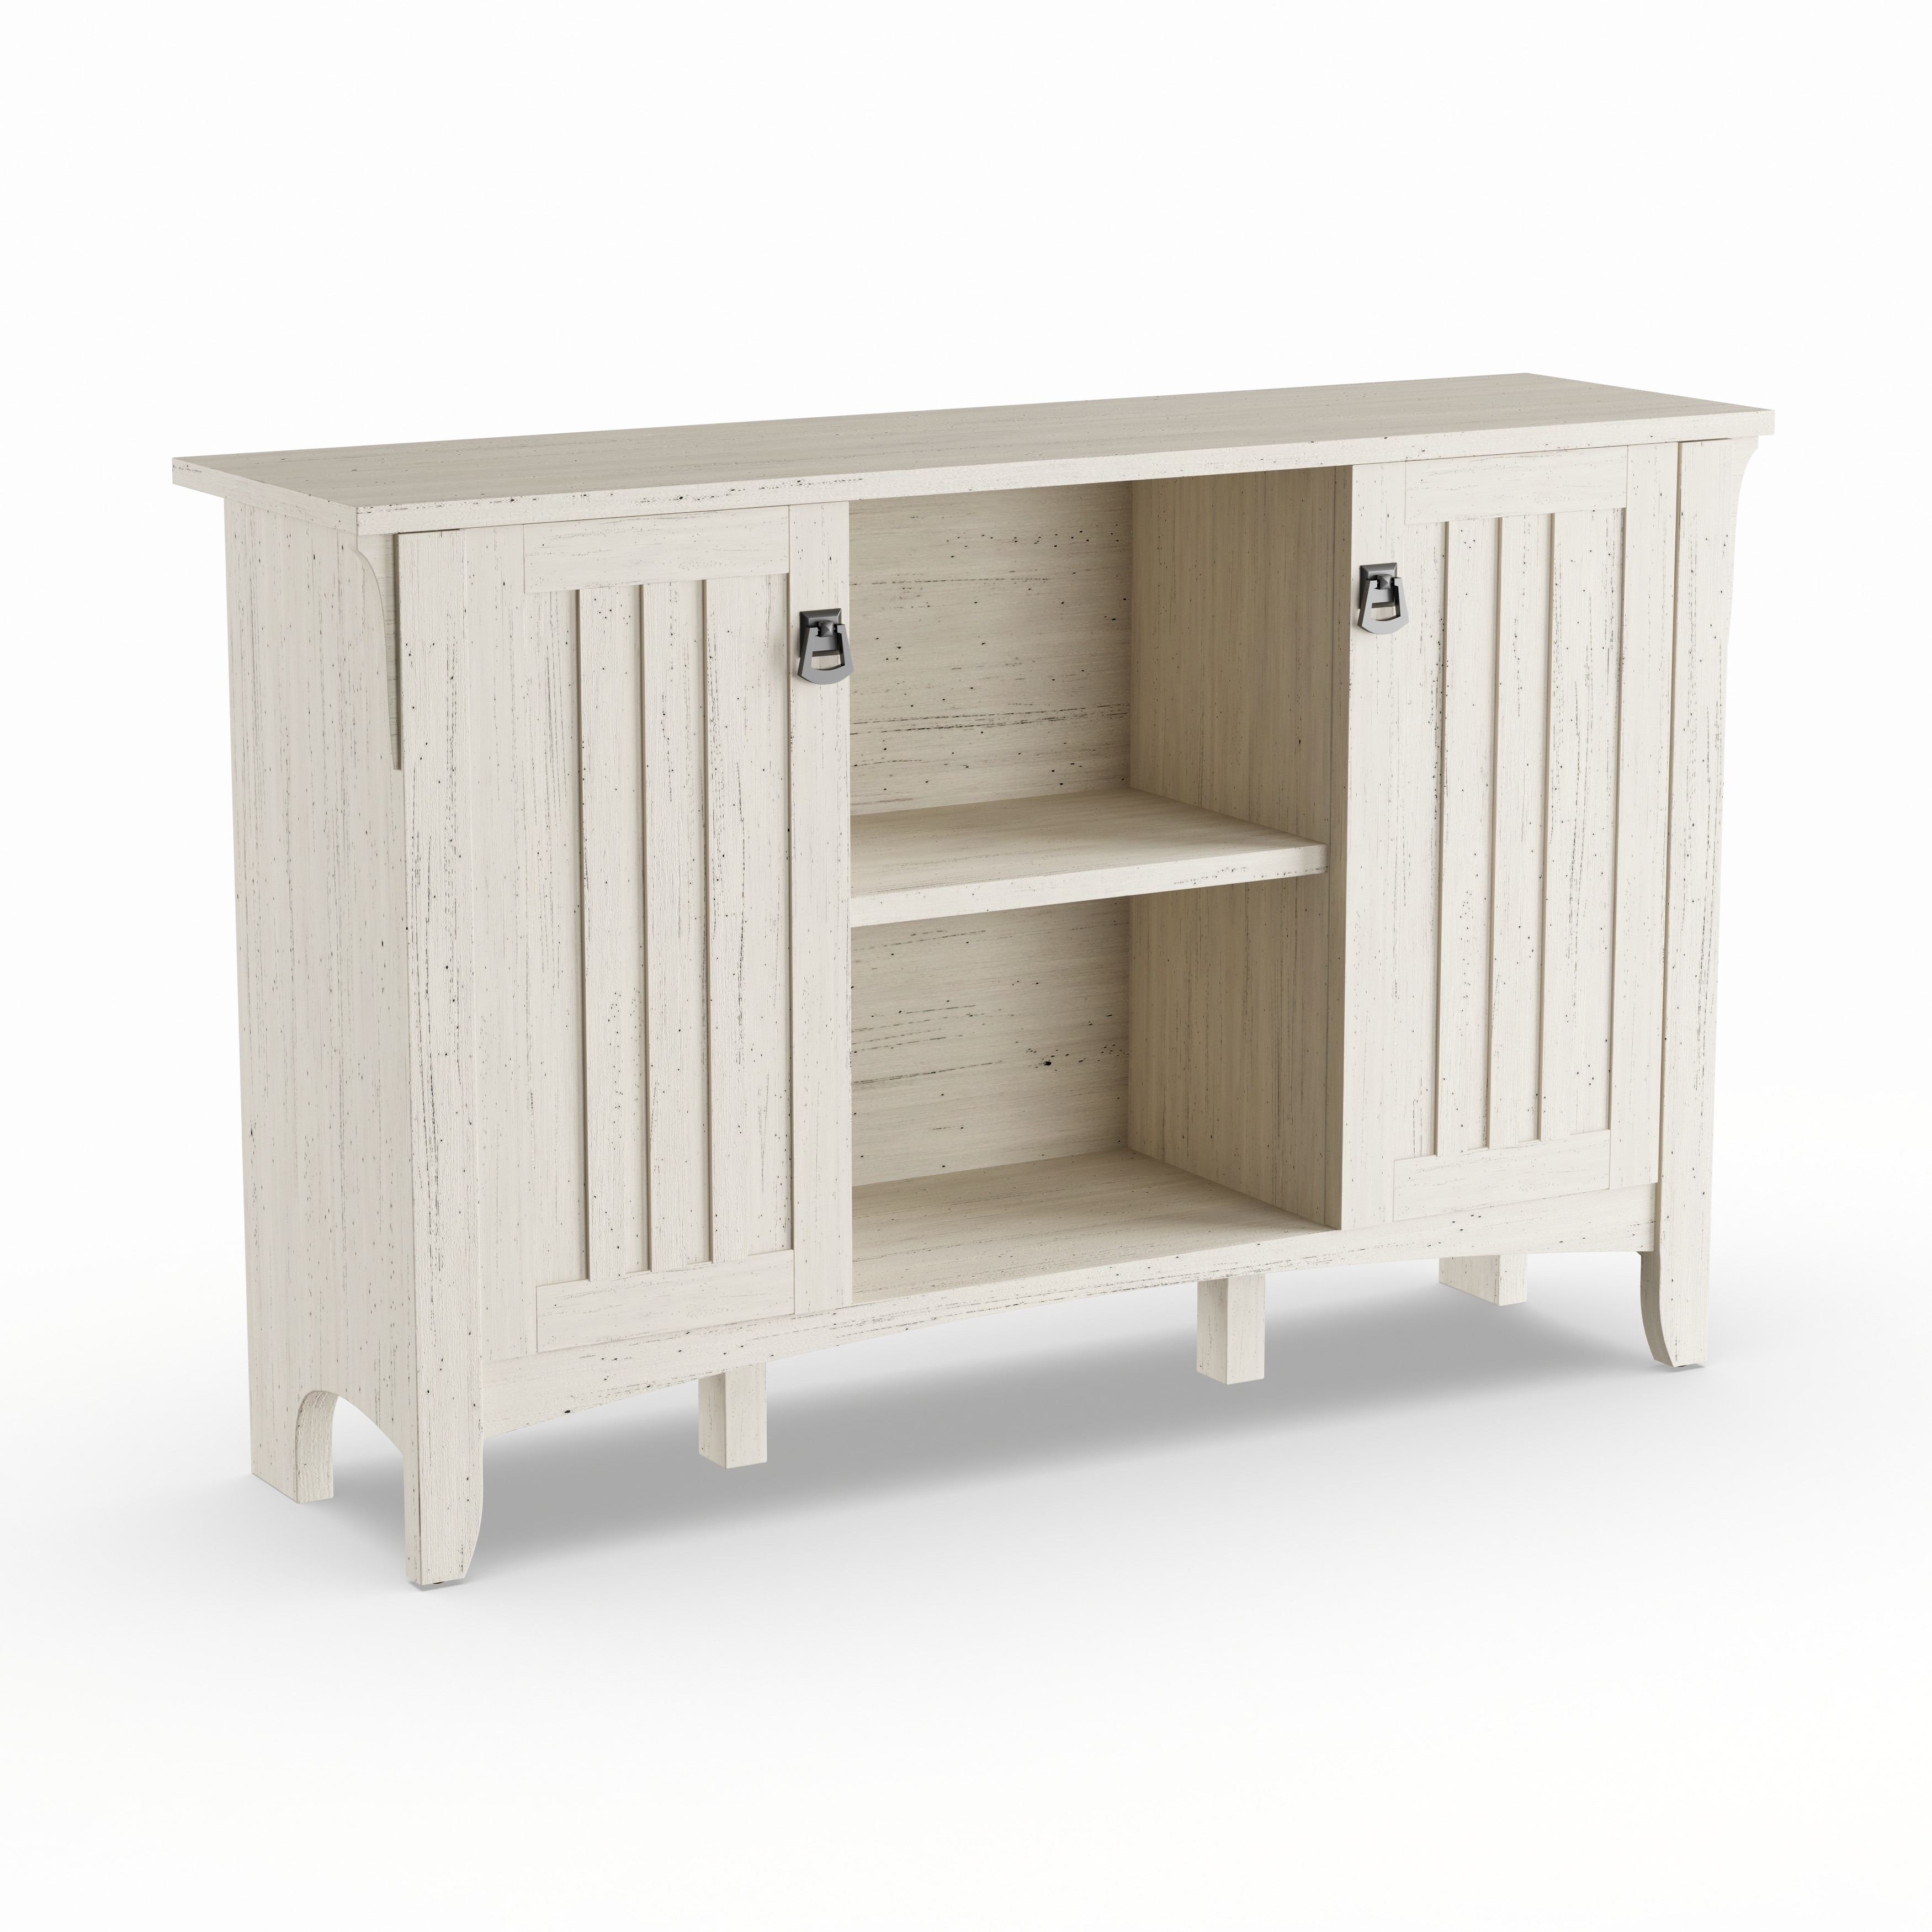 Shop Maison Rouge Lucius Antique White Storage Cabinet With Doors Free Shipping Today Overstock Com 20133405